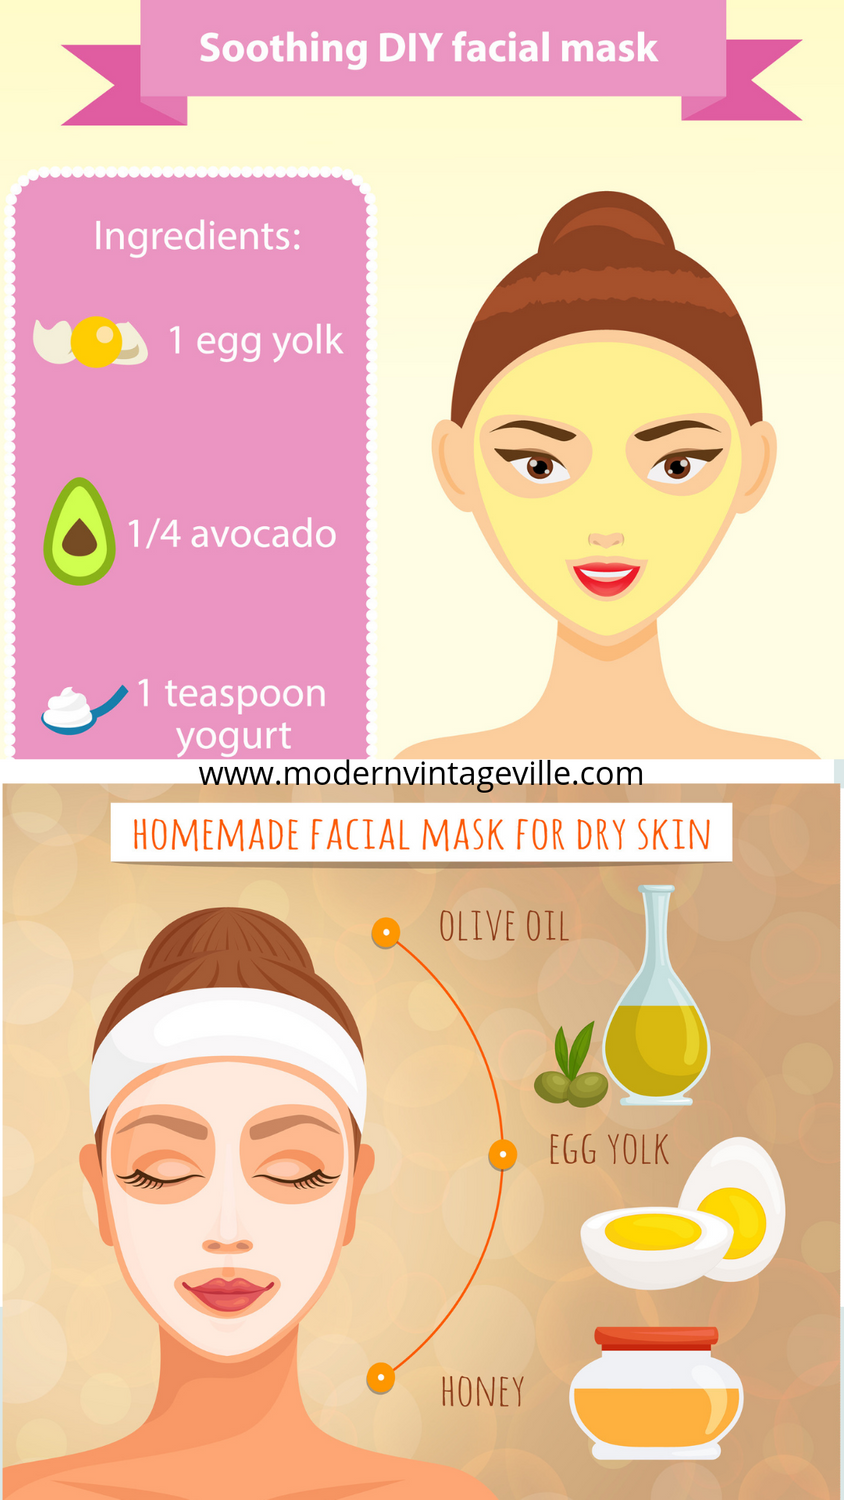 10 Simple Diy Face Masks For Healthy Glowing Skin Mask For Dry Skin Easy Face Mask Diy Homemade Facial Mask